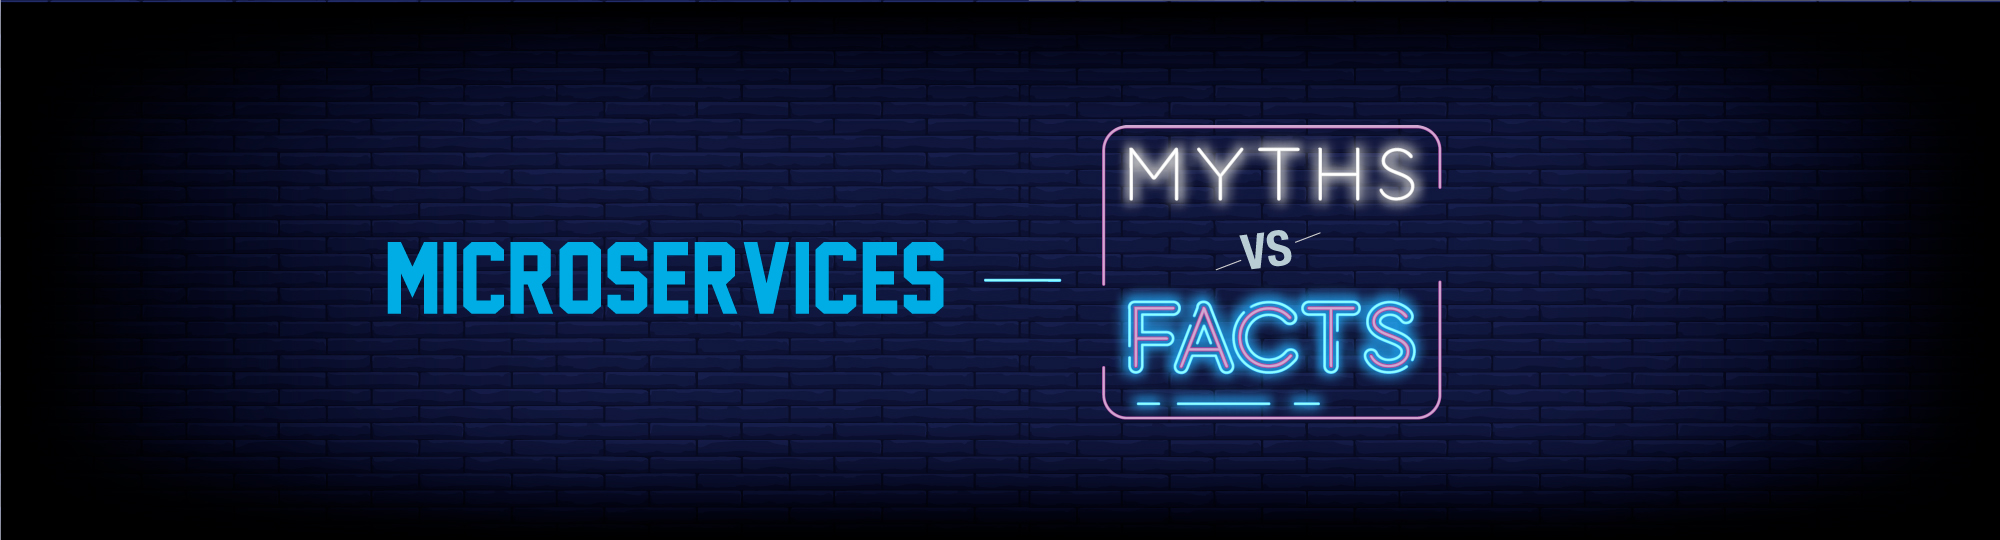 Microservices Myths and Facts